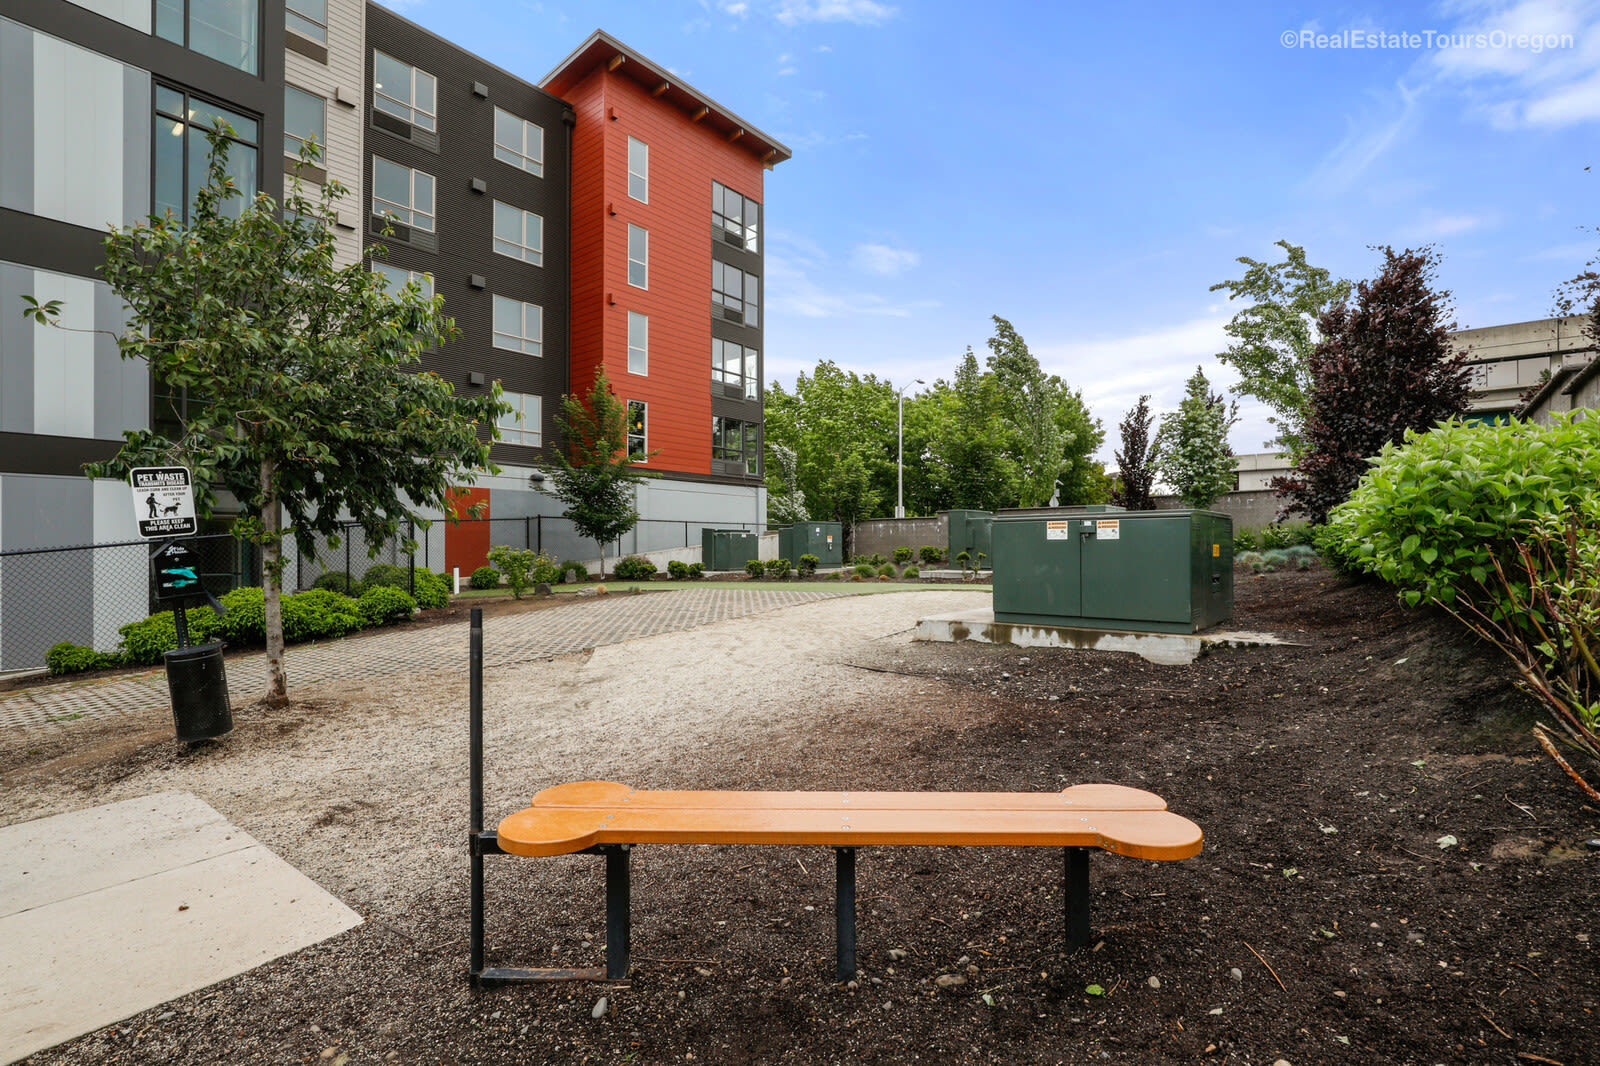 The dog park at South Block Apartments in Salem, OR